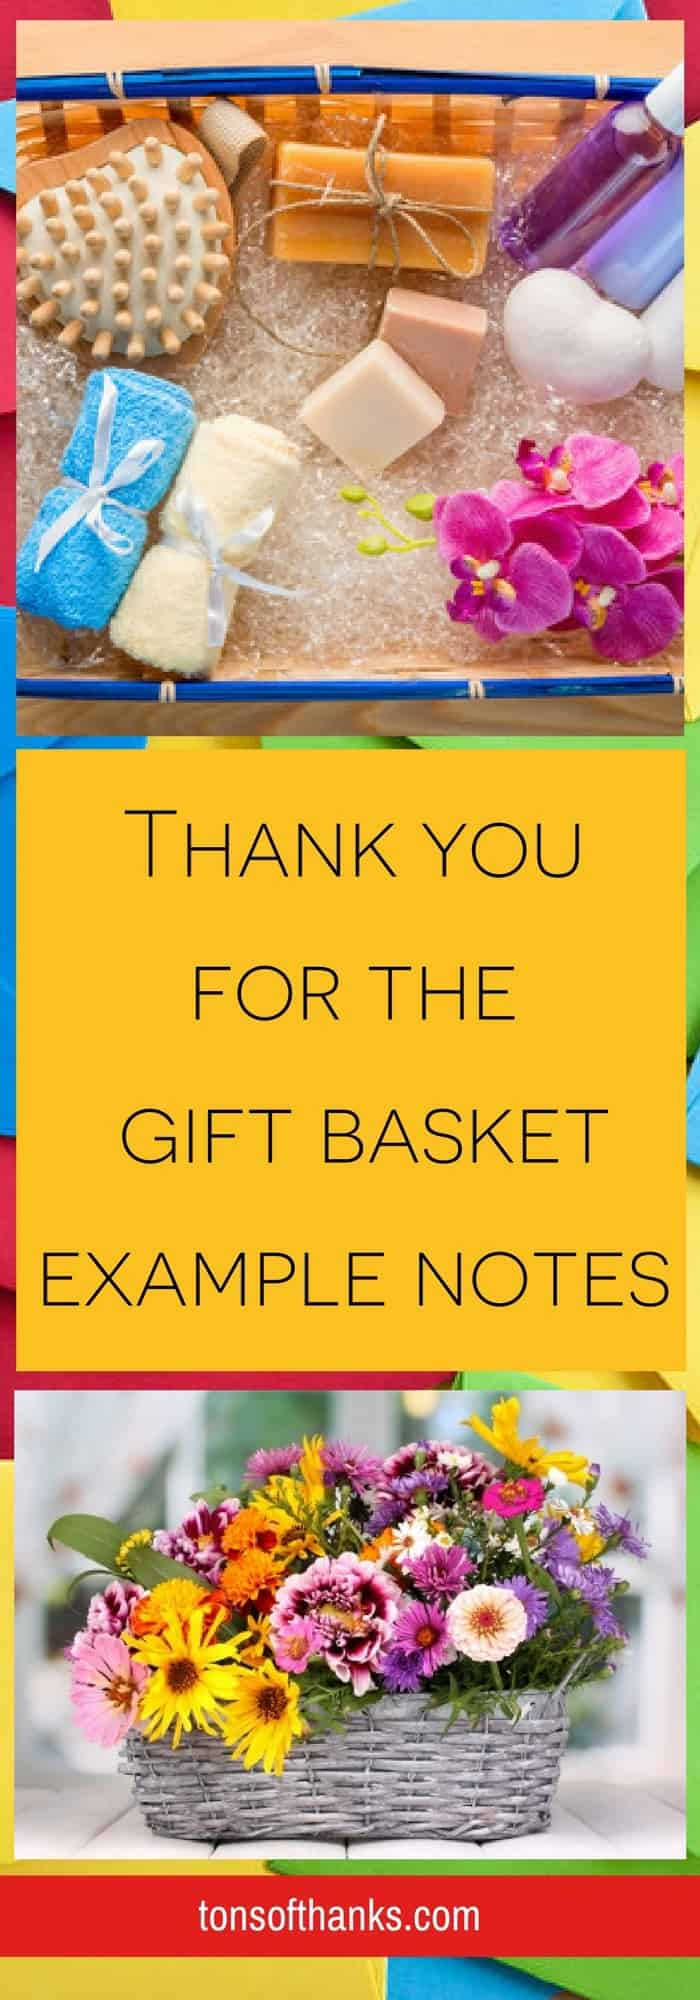 Thank you for the gift basket example notes thank you for the gift basket example notes pinterest izmirmasajfo